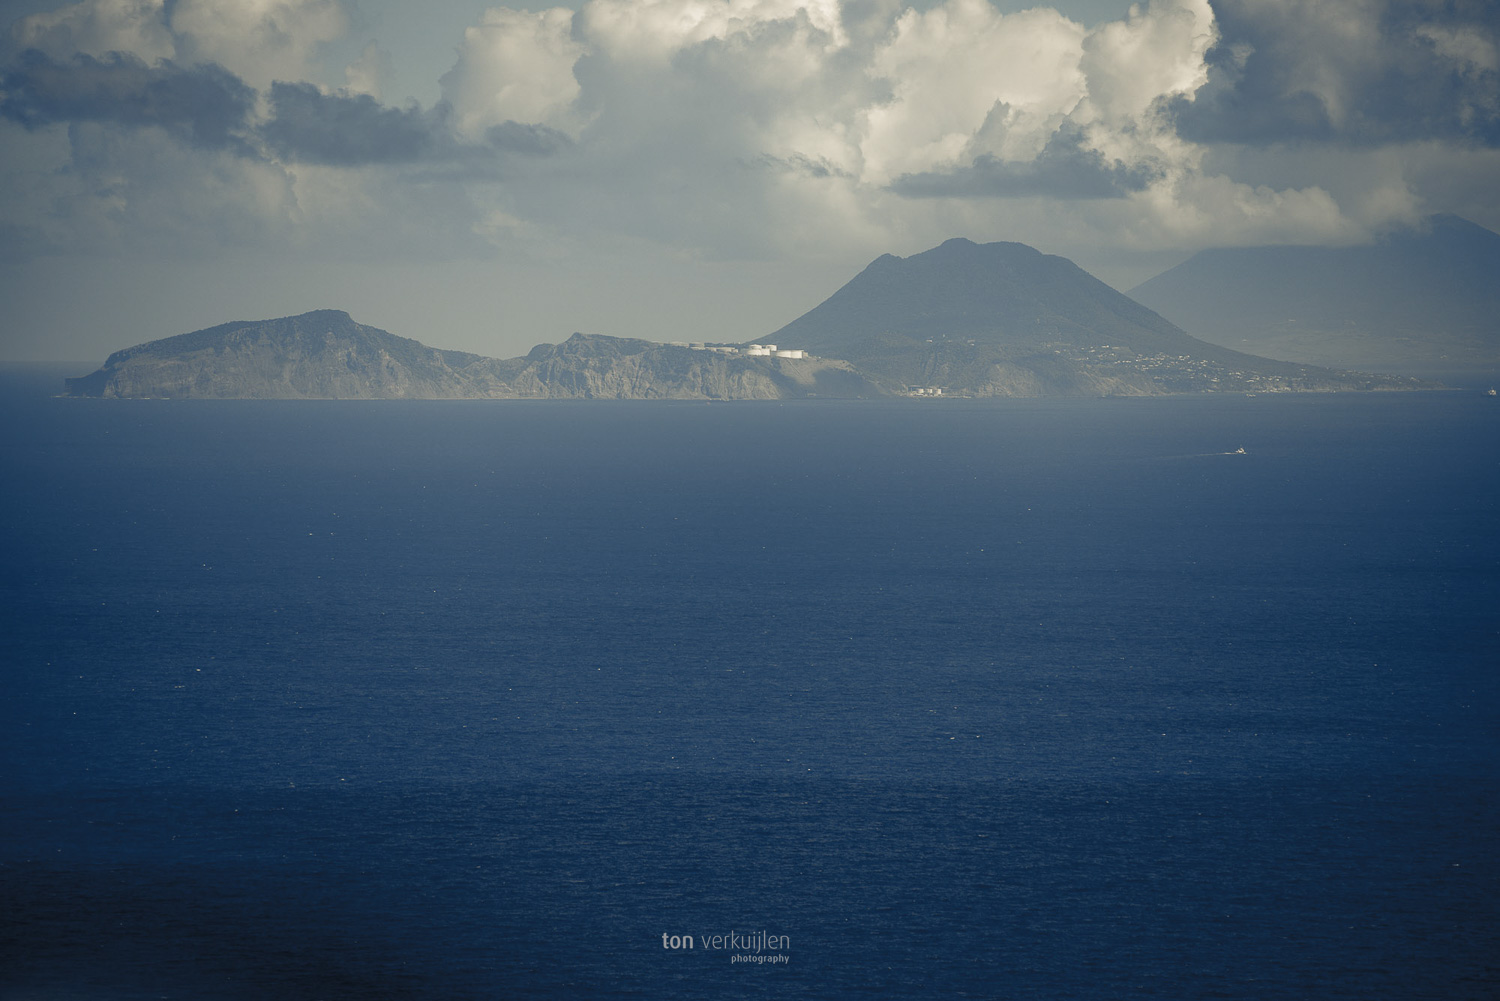 St. Eustatius from Saba